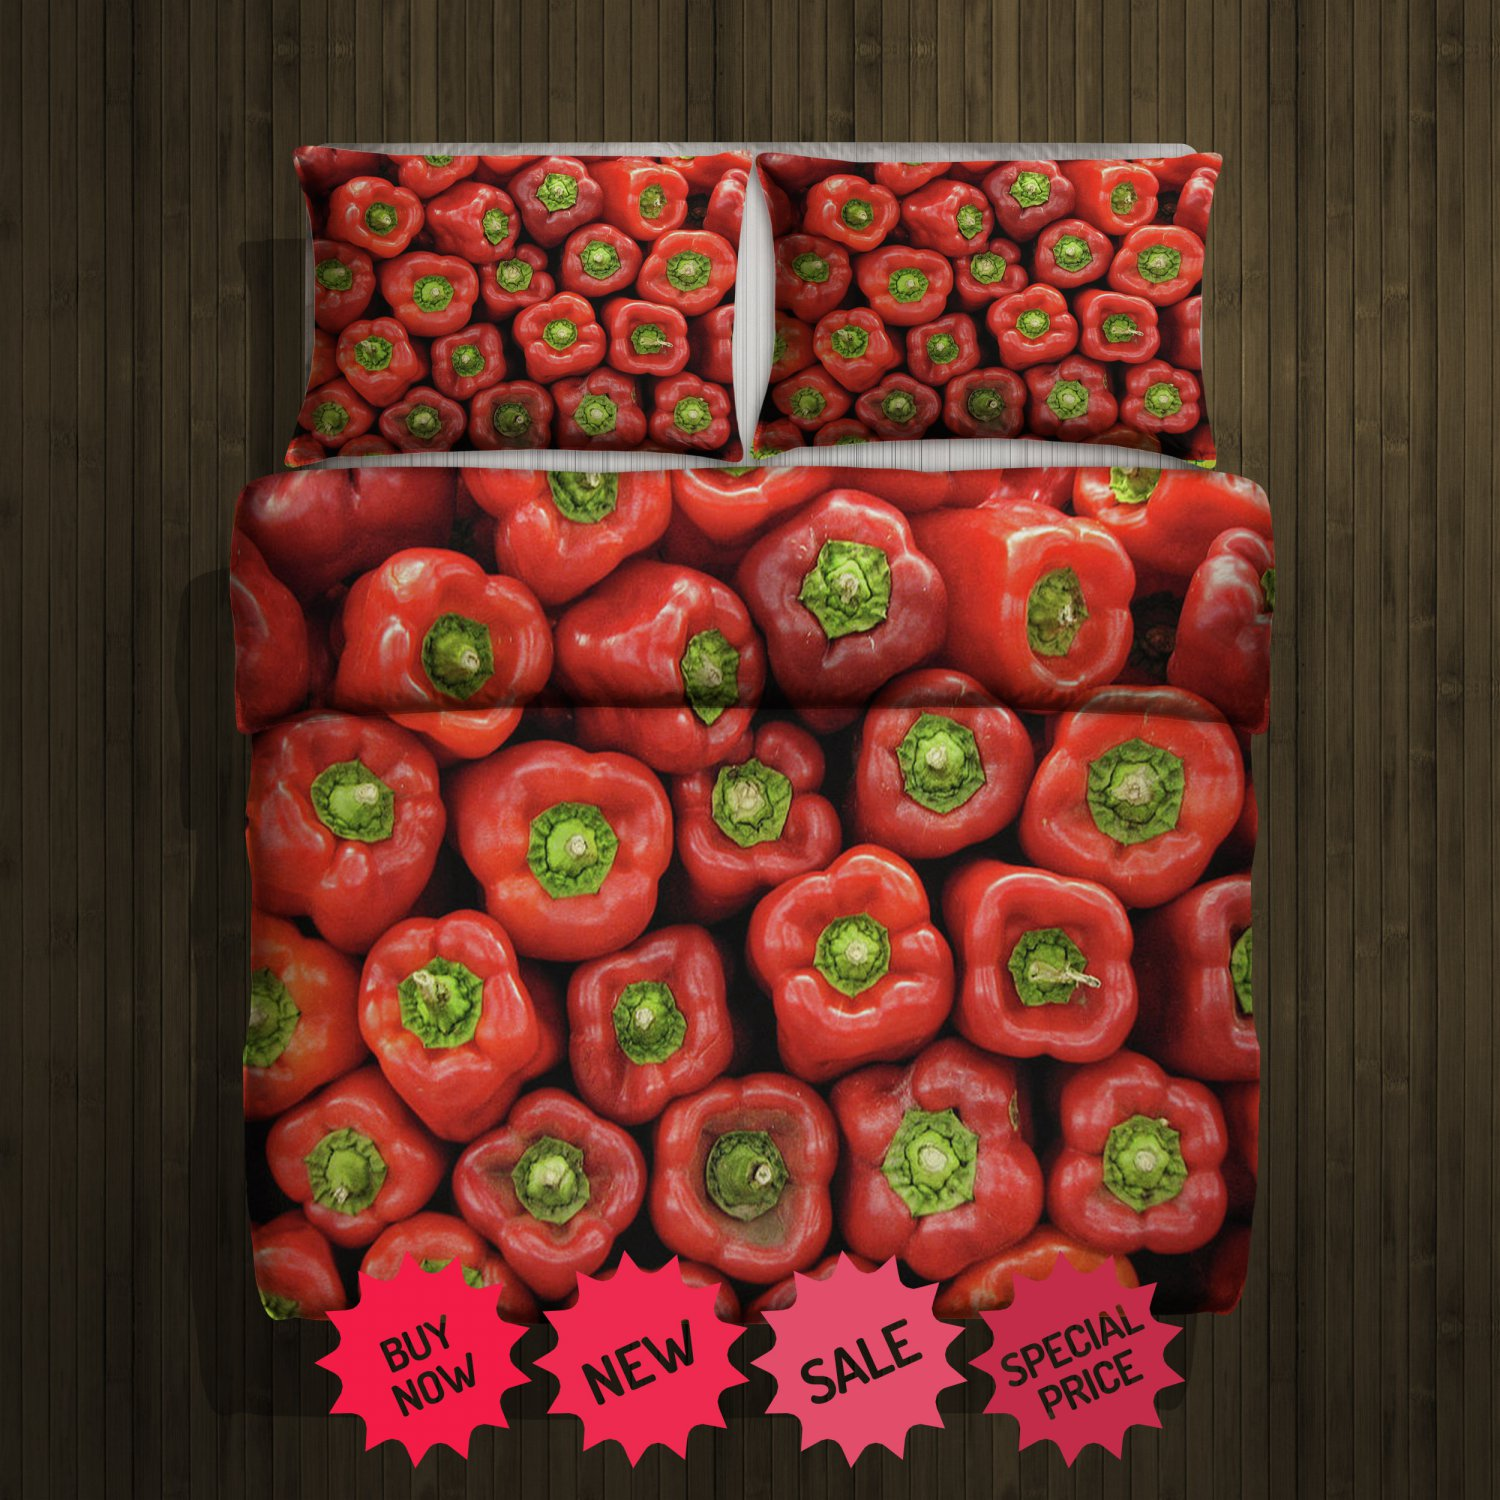 Peppers Blanket Large & 2 Pillow Cases #96488619,96488625(2)